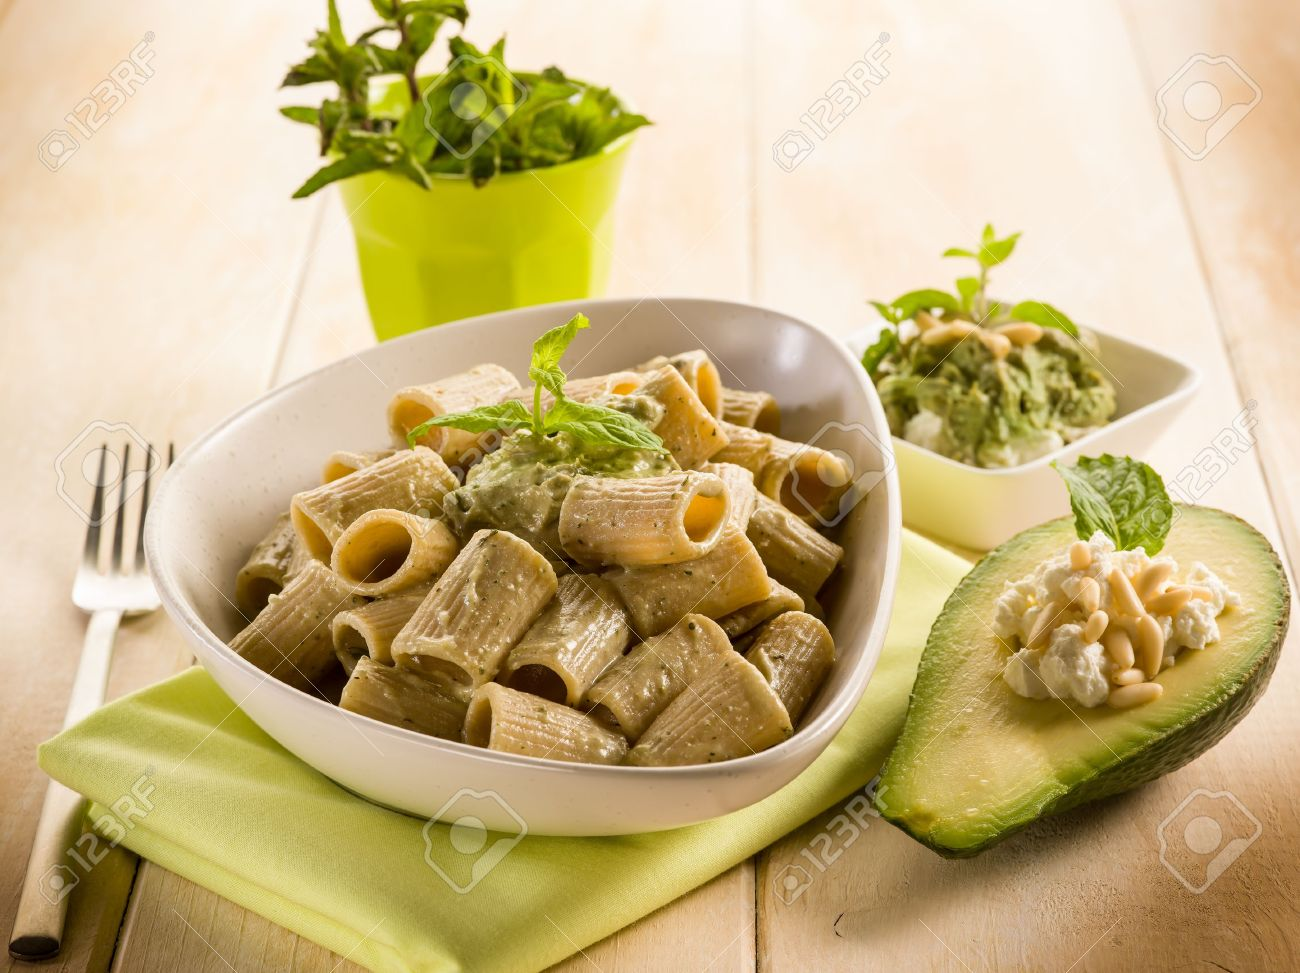 Pasta With Avocado Mint And Pine Nuts Pesto Stock Photo, Picture